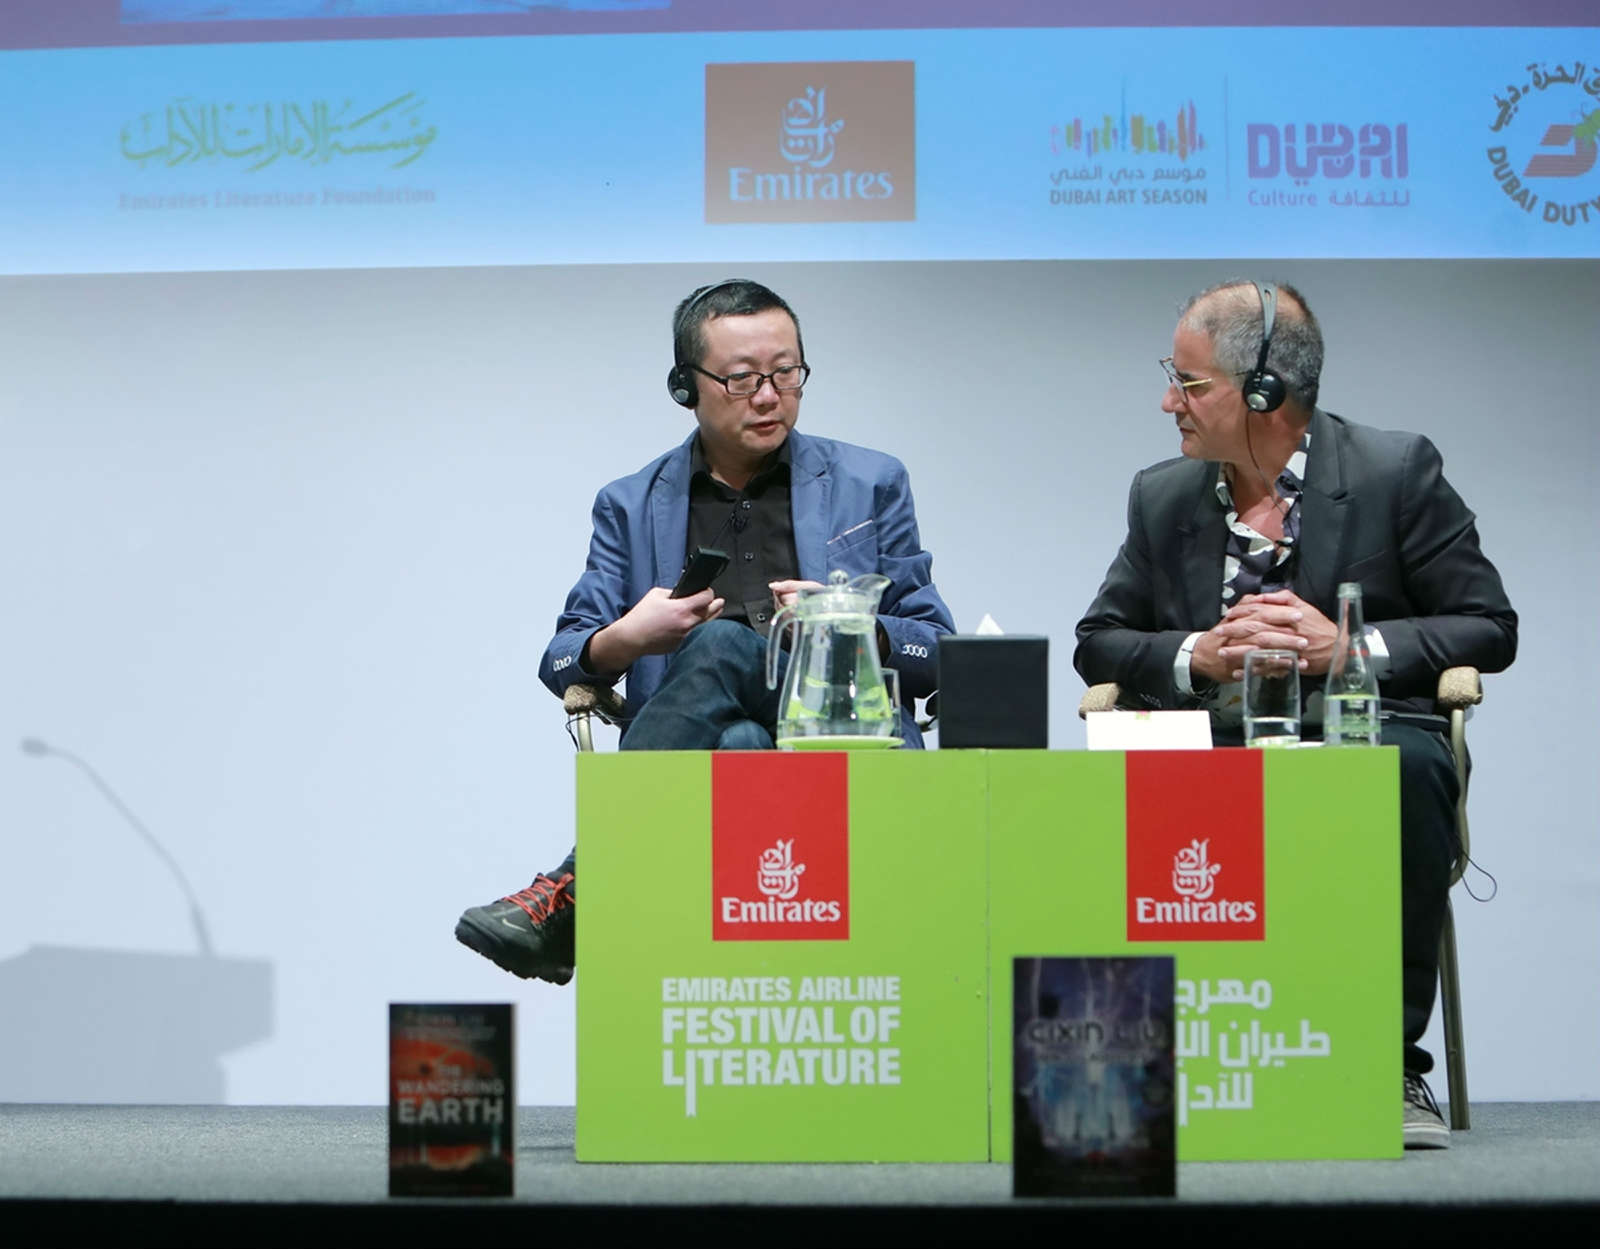 Chinese sci-fi writer Liu Cixin (L) speaks during a meeting with his readers at the Emirates Airline Festival of Literature in Dubai, the United Arab Emirates (UAE), on March 8, 2019. (Xinhua)